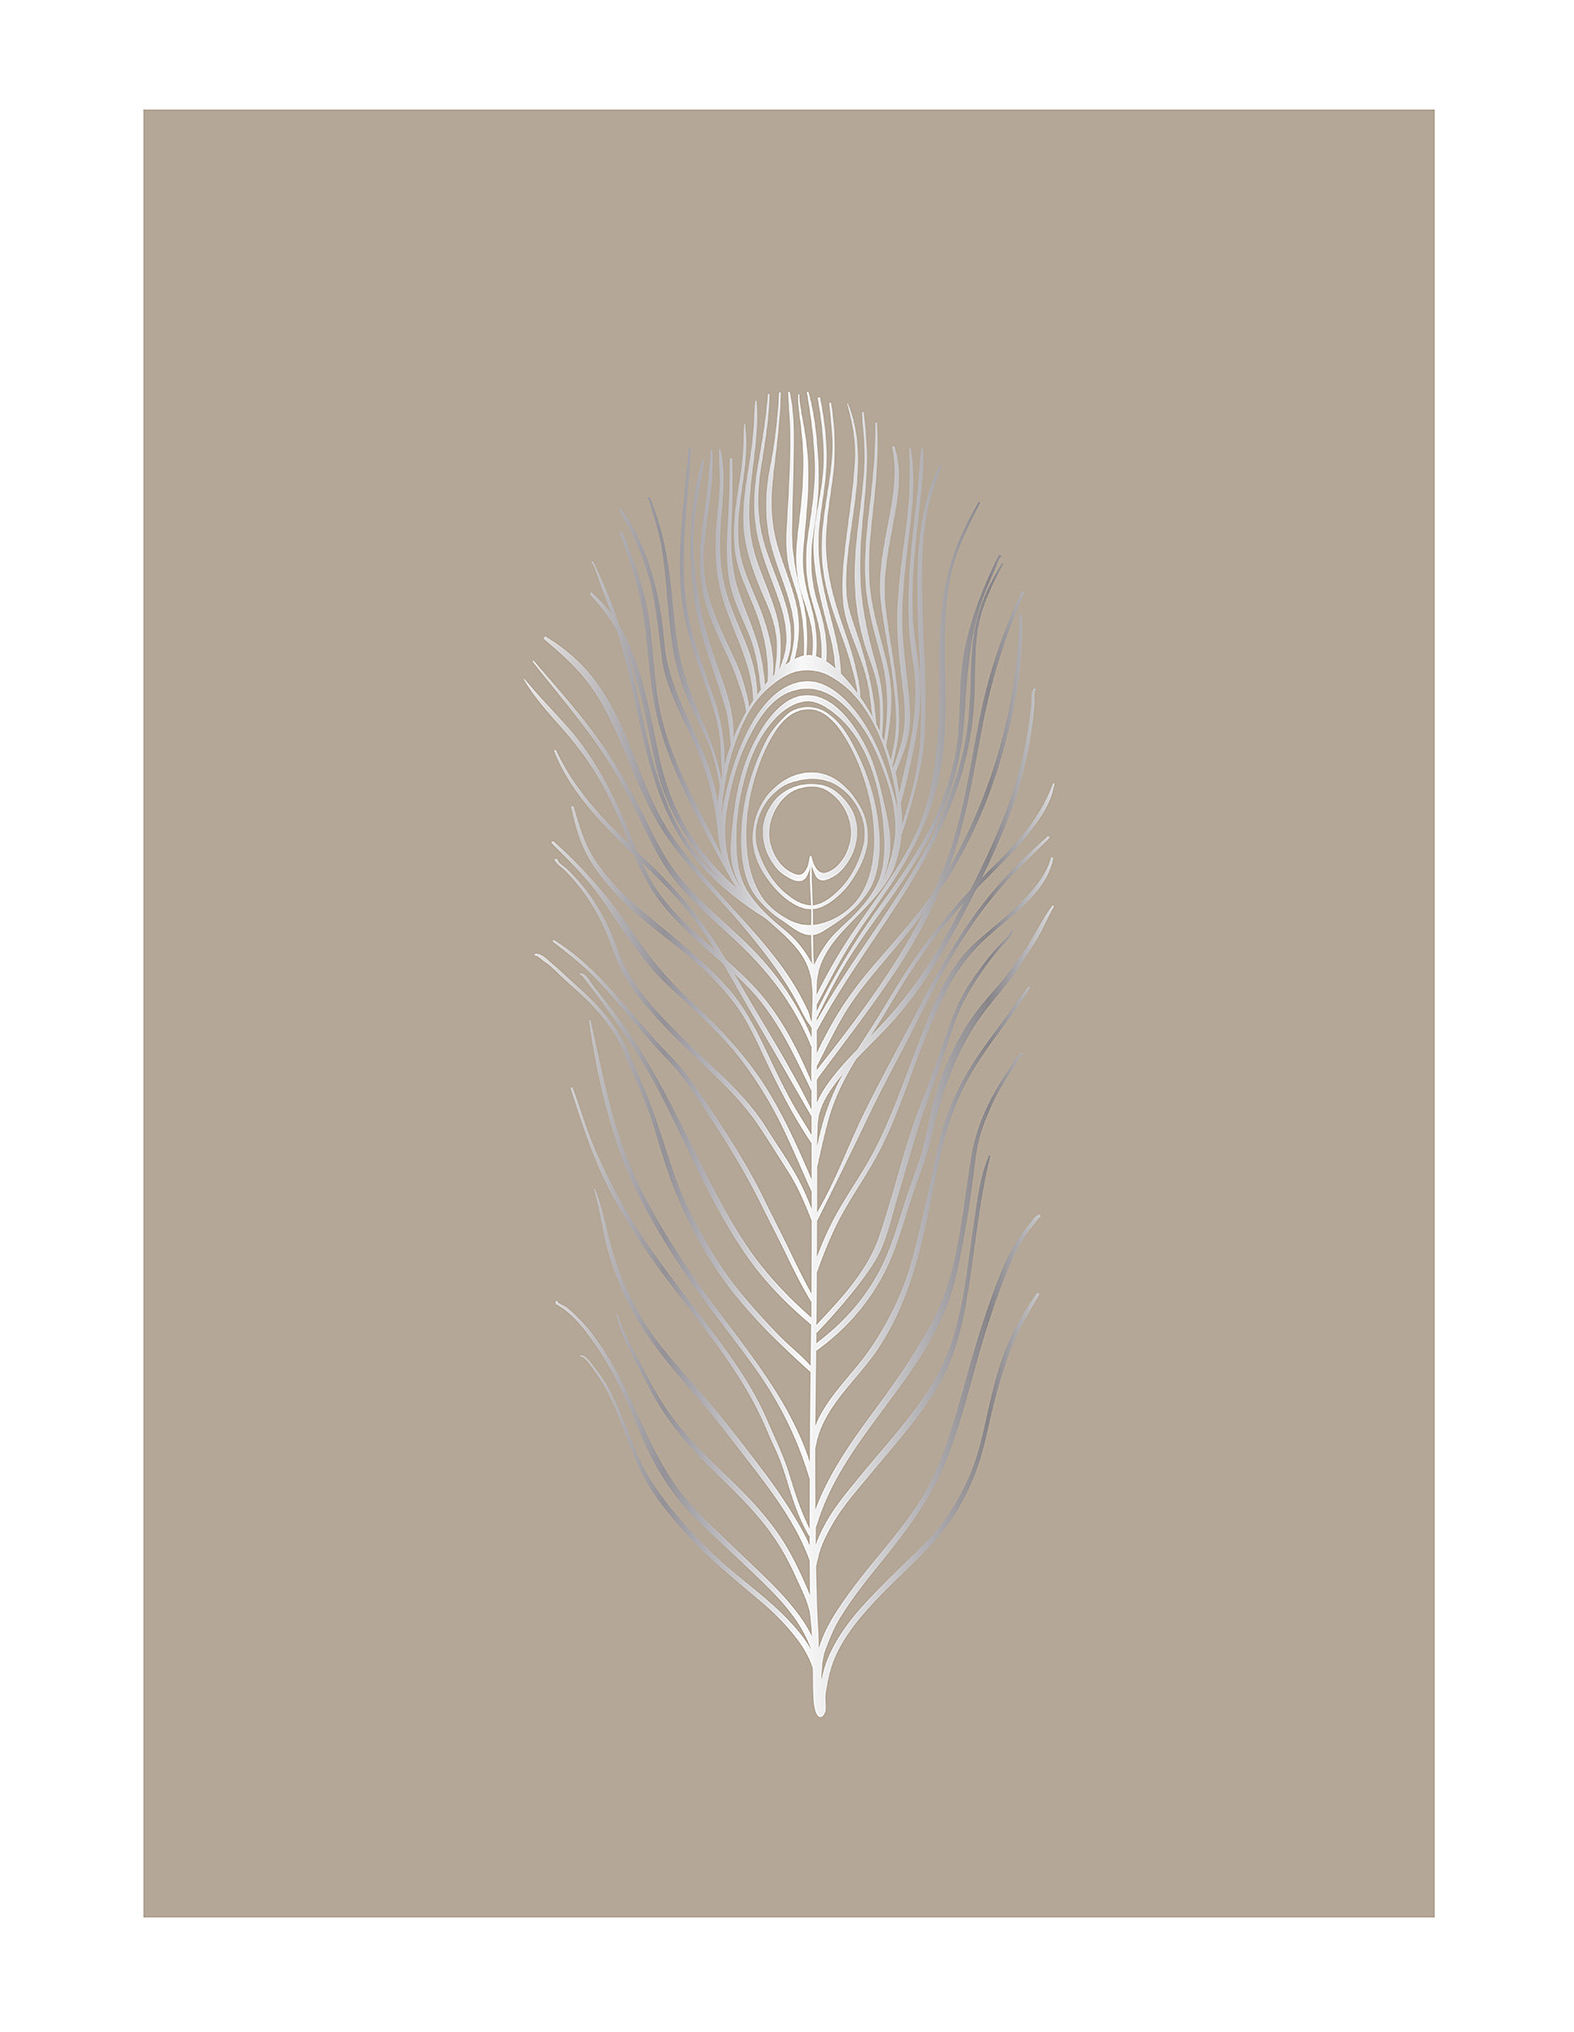 Decoration - Wallpaper & Wall Stickers - Poster - / Abstract - 30 x 40 cm by Bloomingville - Abstract / Beige - Paper